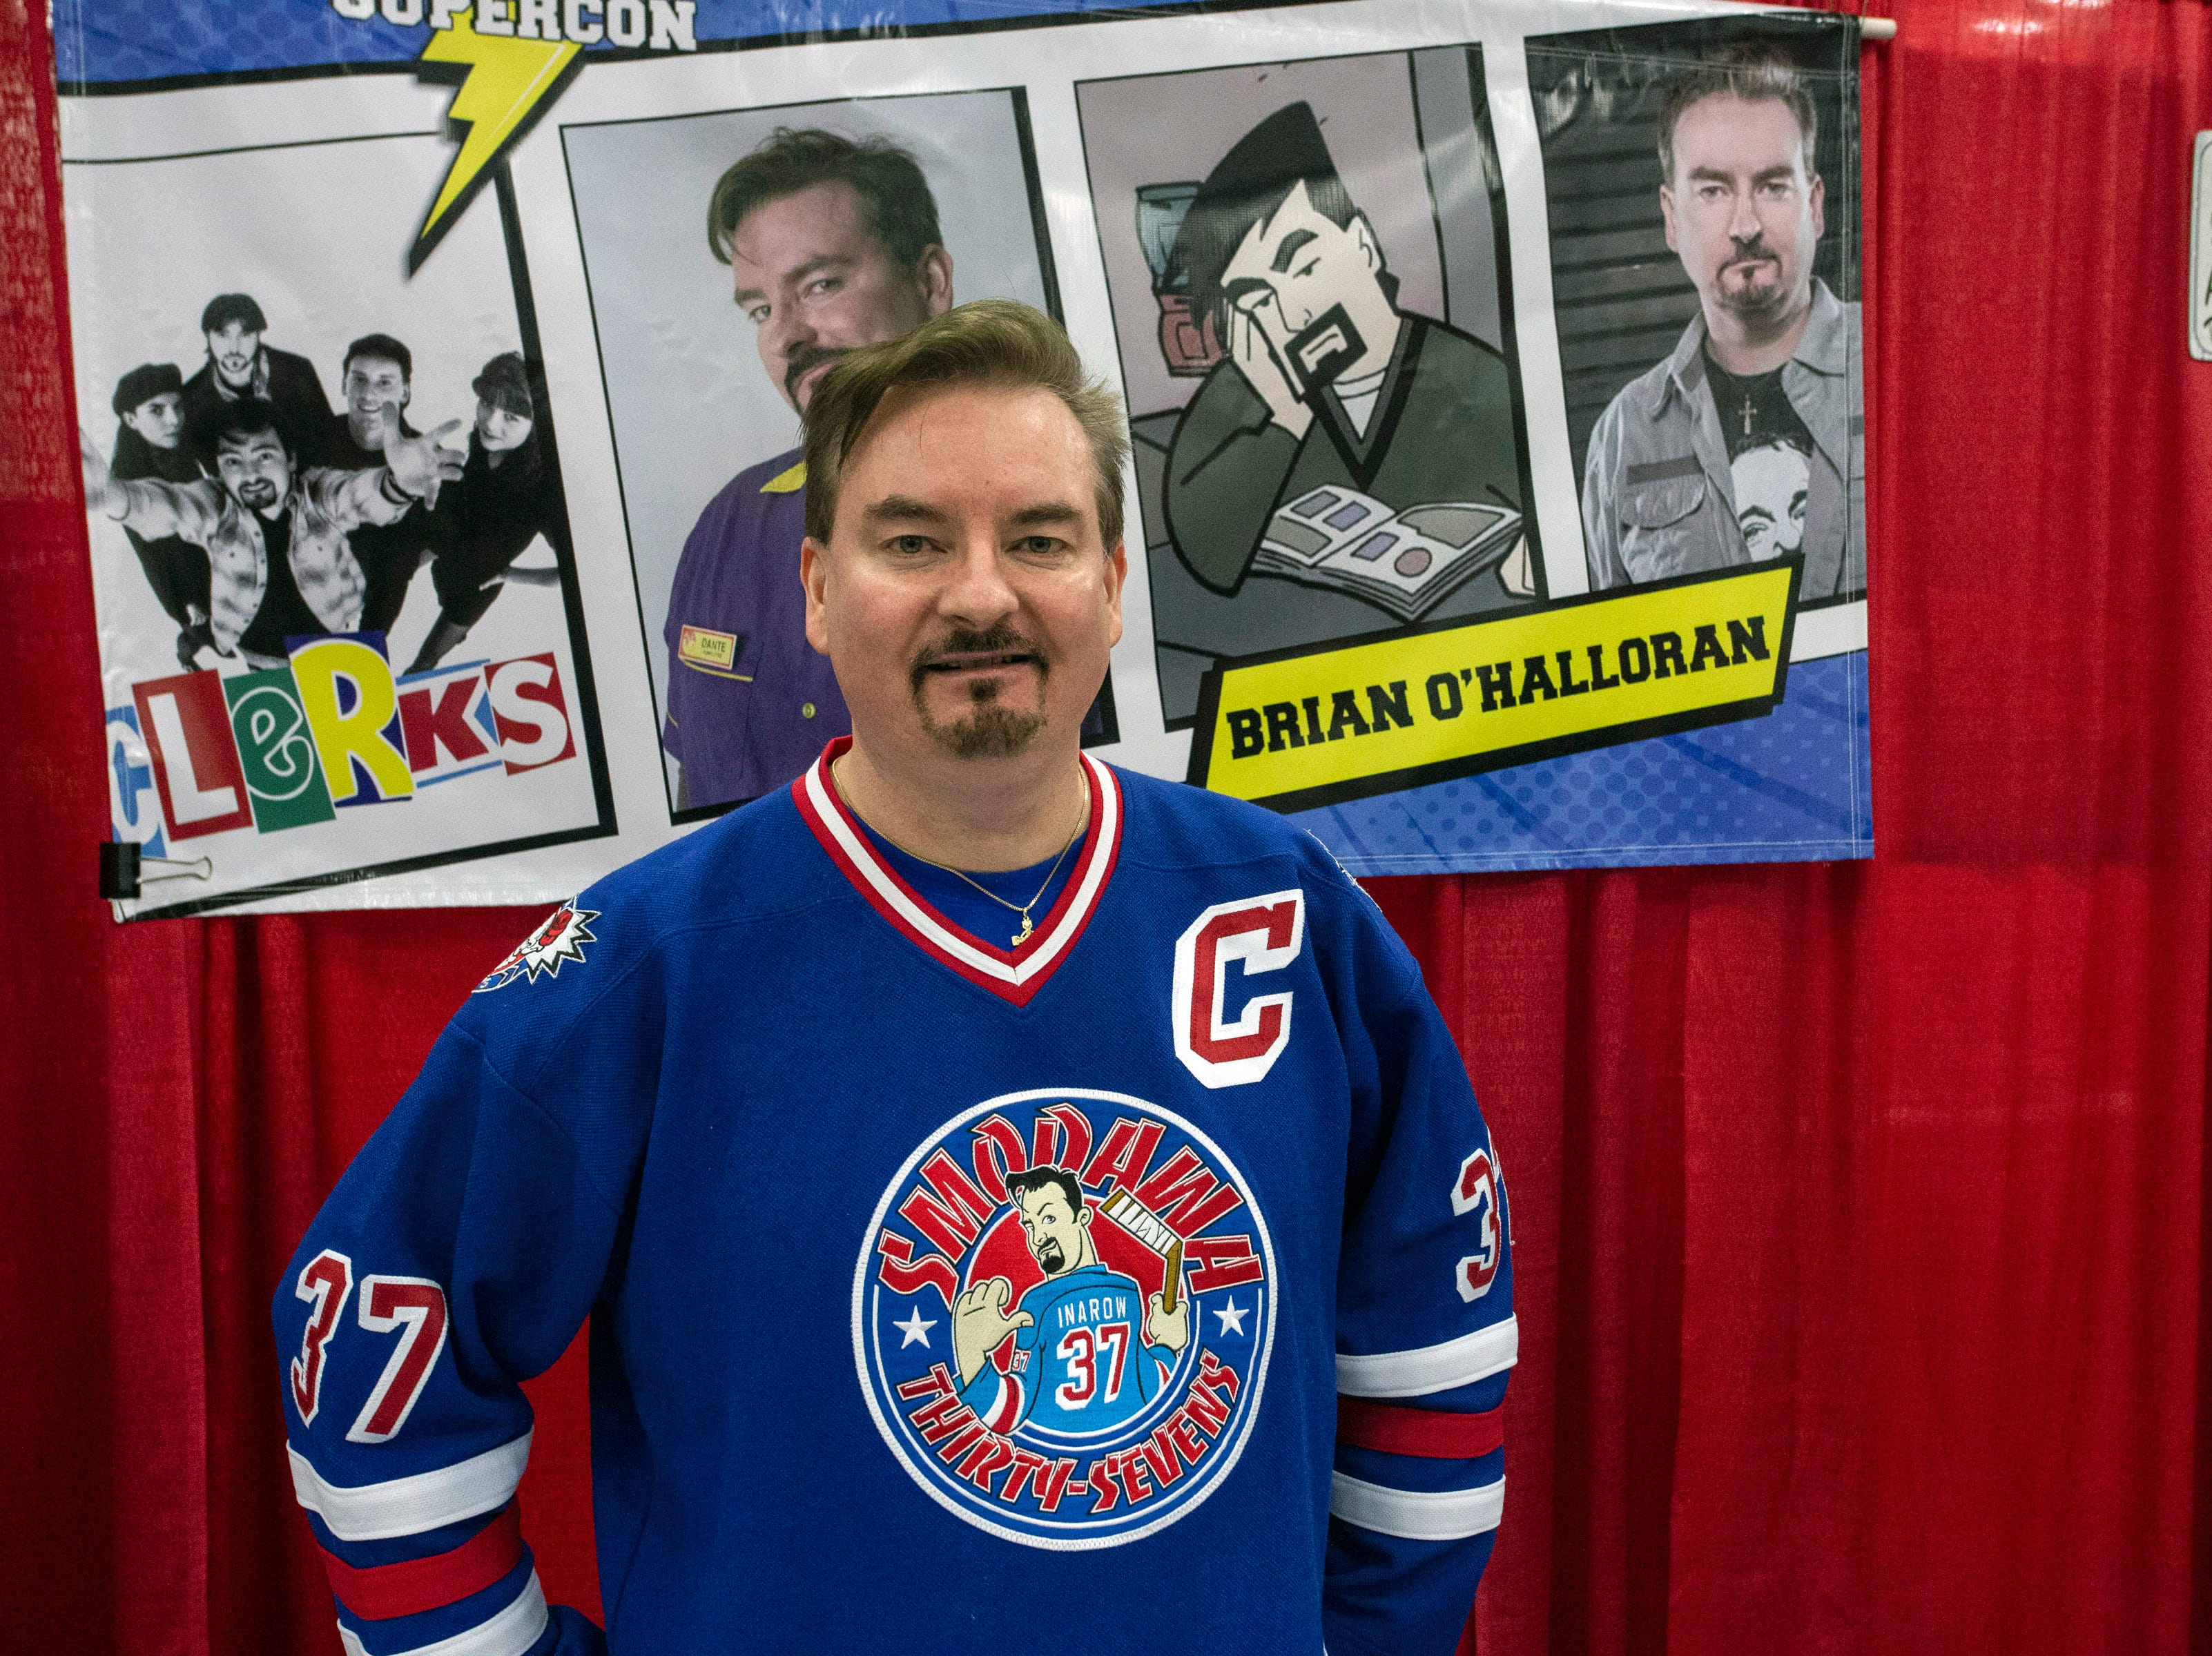 Actor Brian C. O'Halloran (Clerks) provided autographs to fans during Louisville SuperCon. 12/1/18